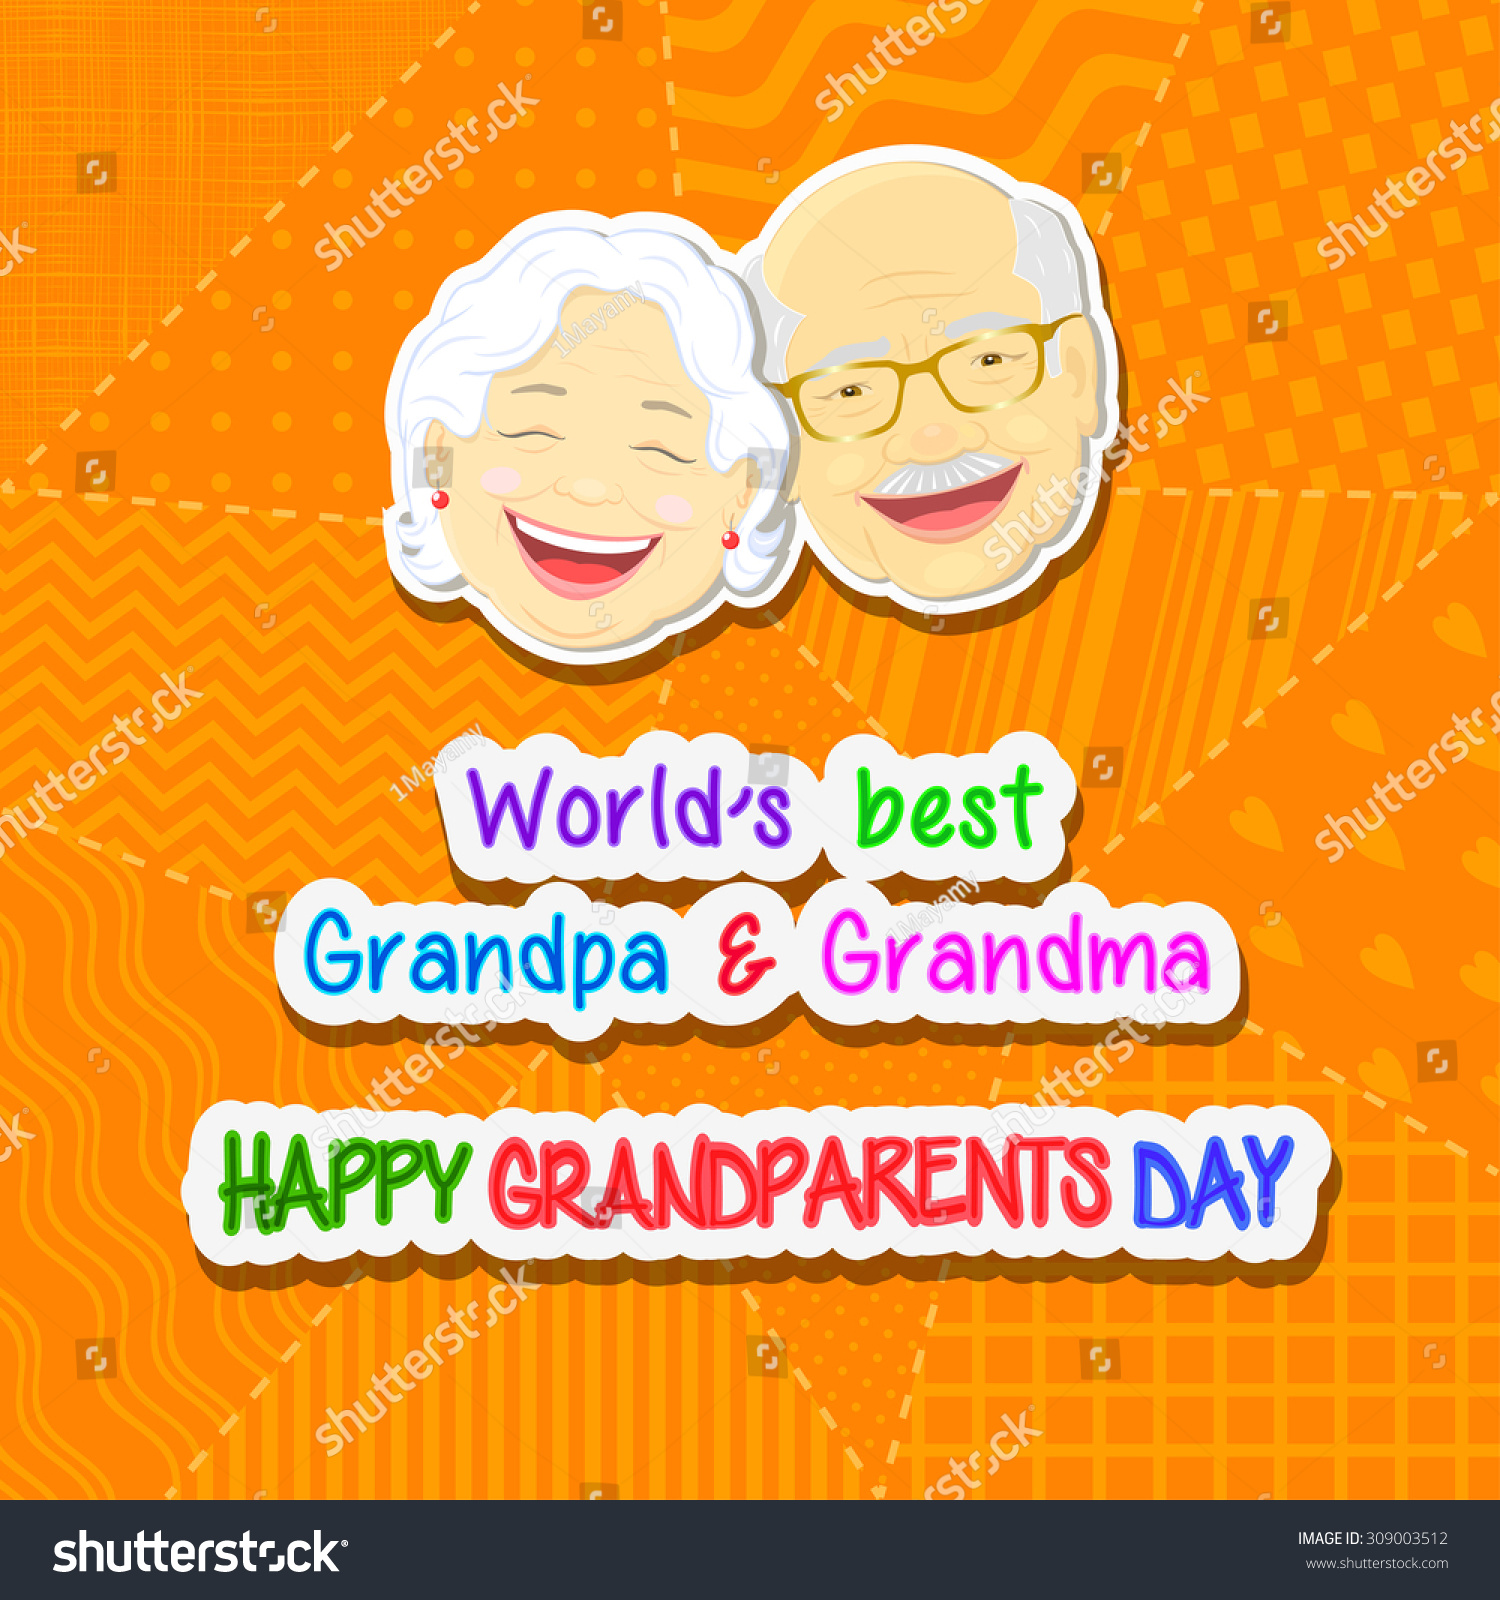 Greetings on grandparents day phrase face stock vector 309003512 greetings on grandparents day with the phrase and face of grandfather and grandmother on a yellow kristyandbryce Gallery